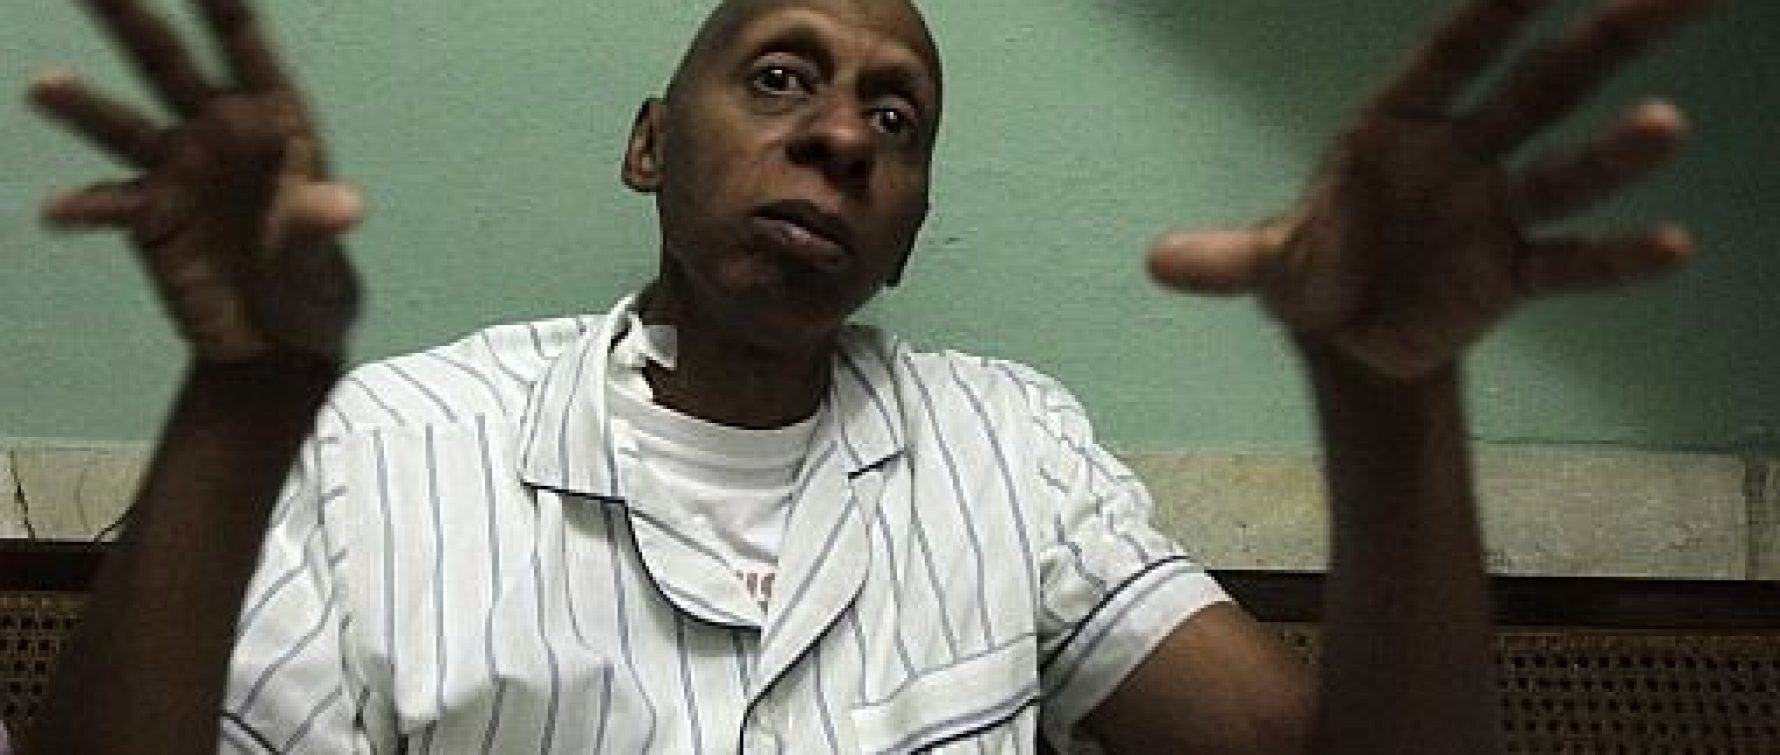 The IDC condemns the recent arrest of Cuban dissident Guillermo Farinas